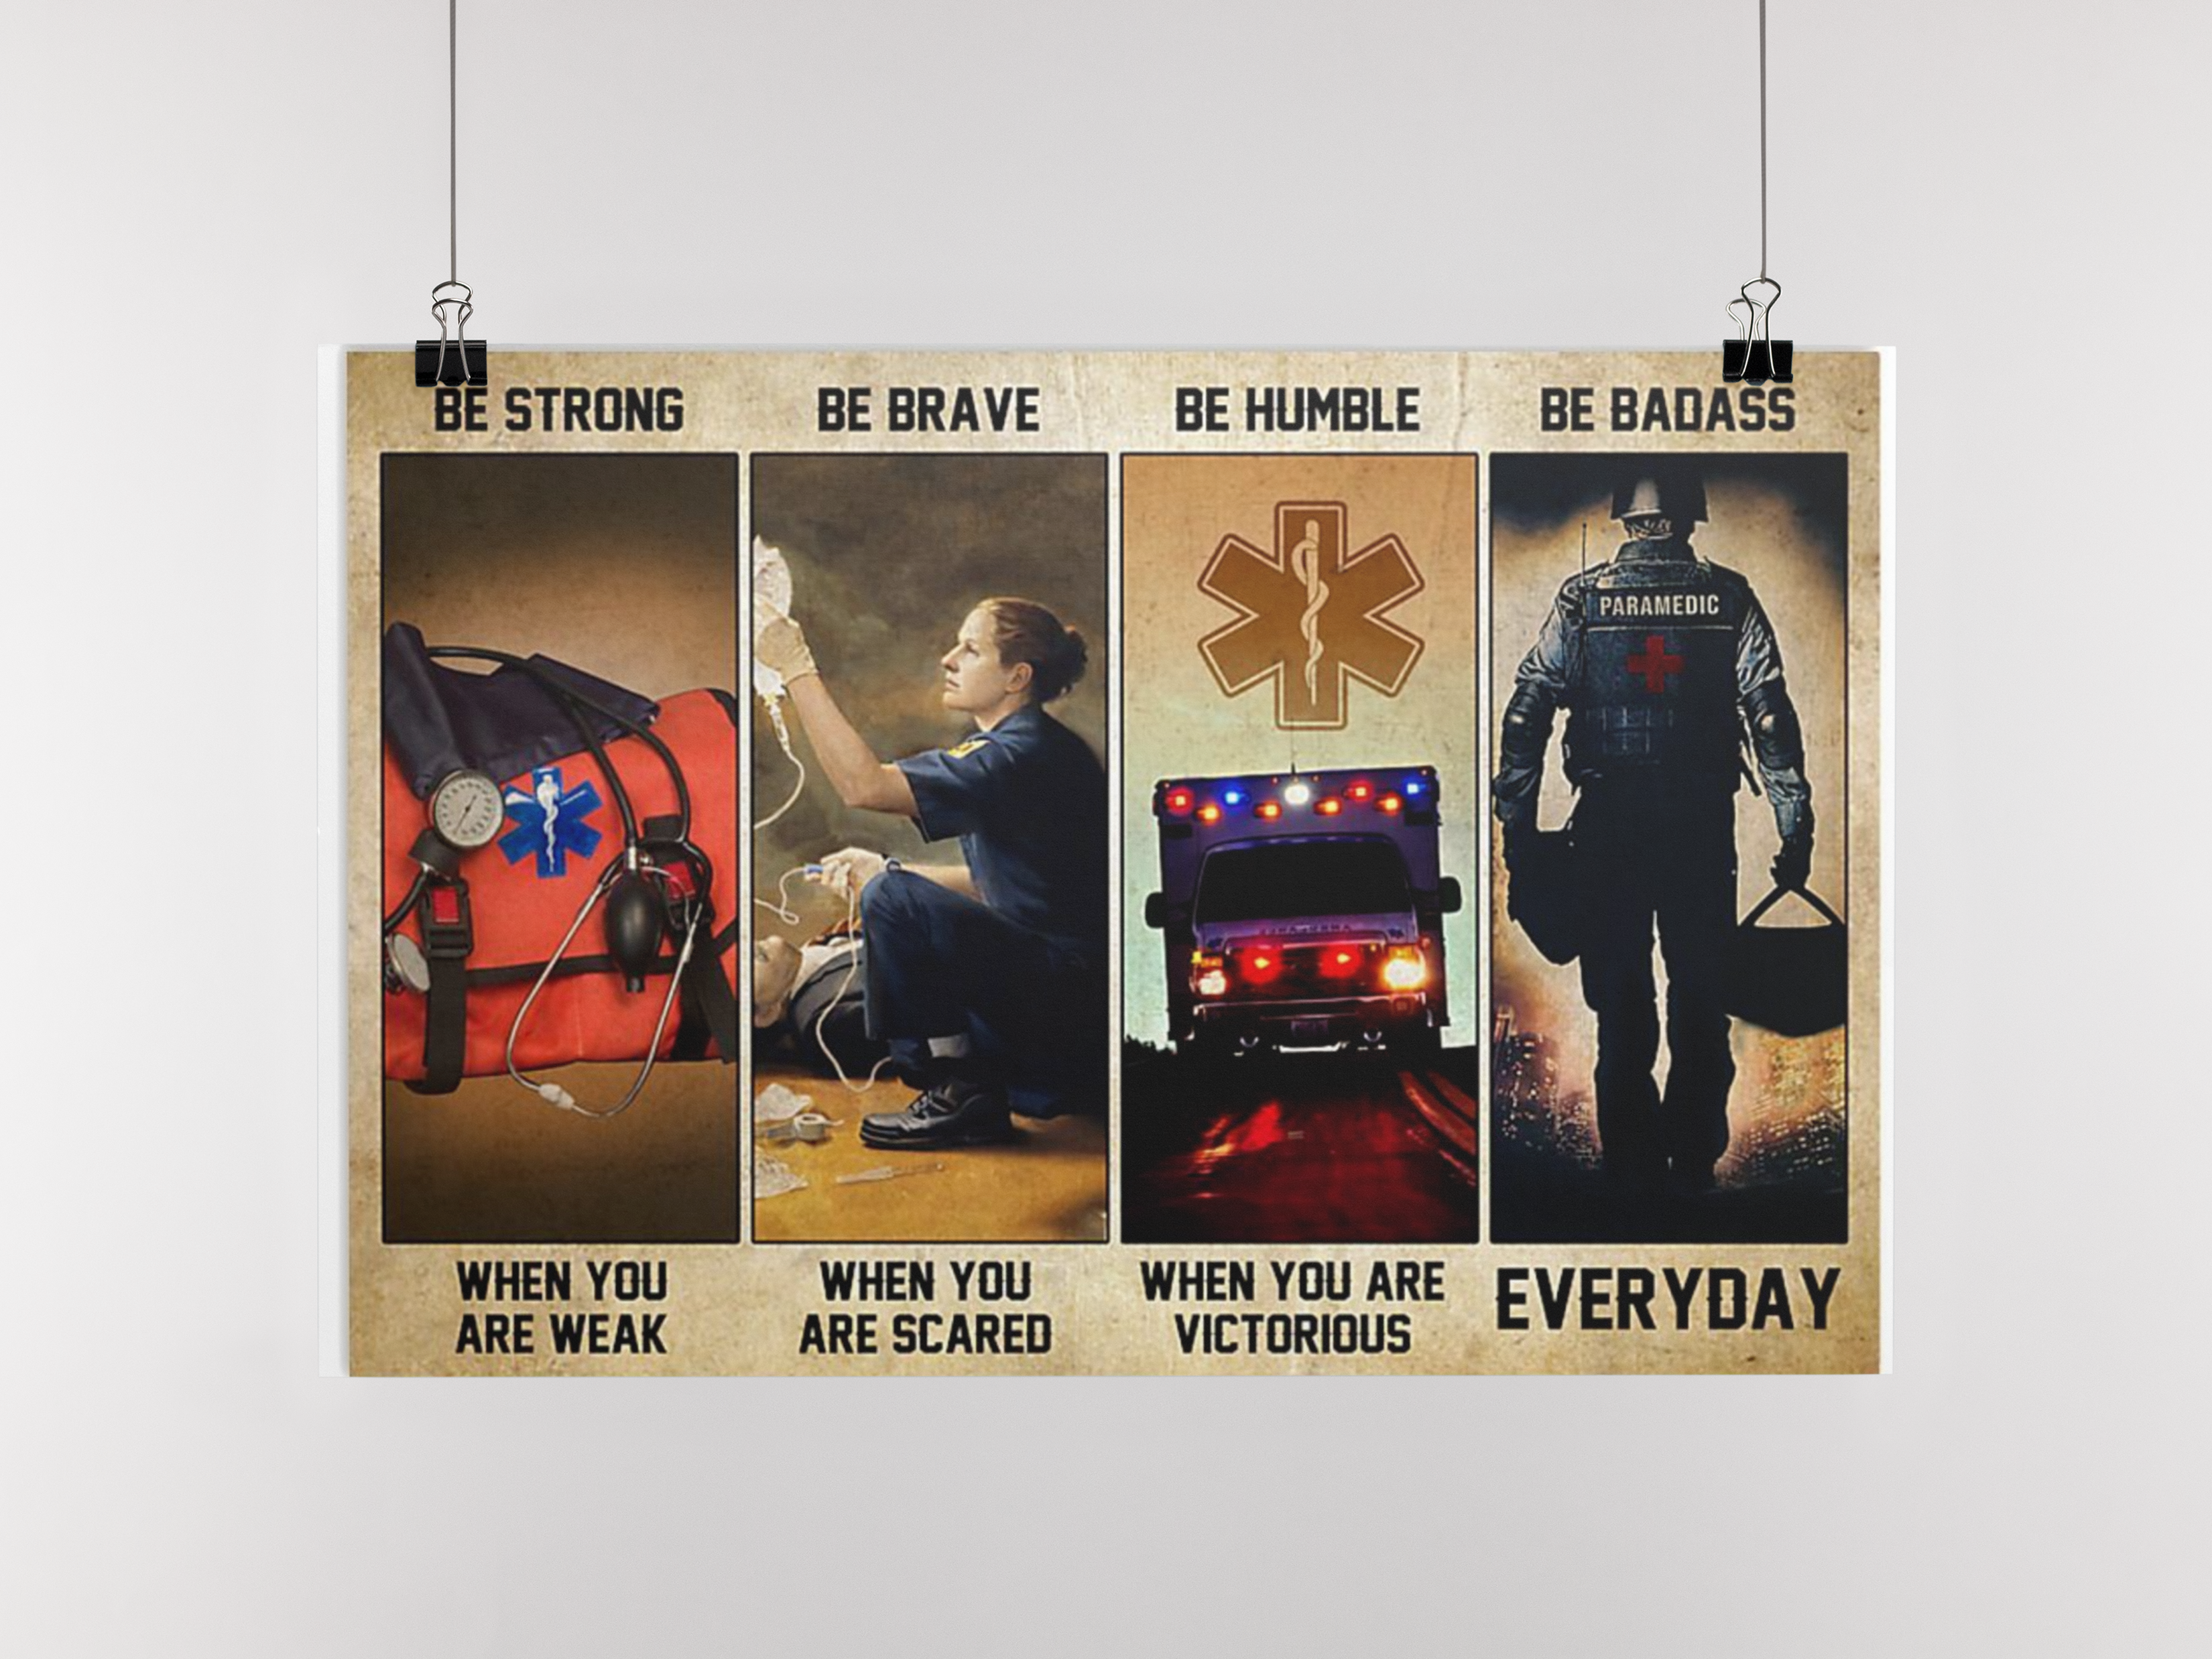 Emergency Medical Technicians EMT be strong be brave be humble be badass poster